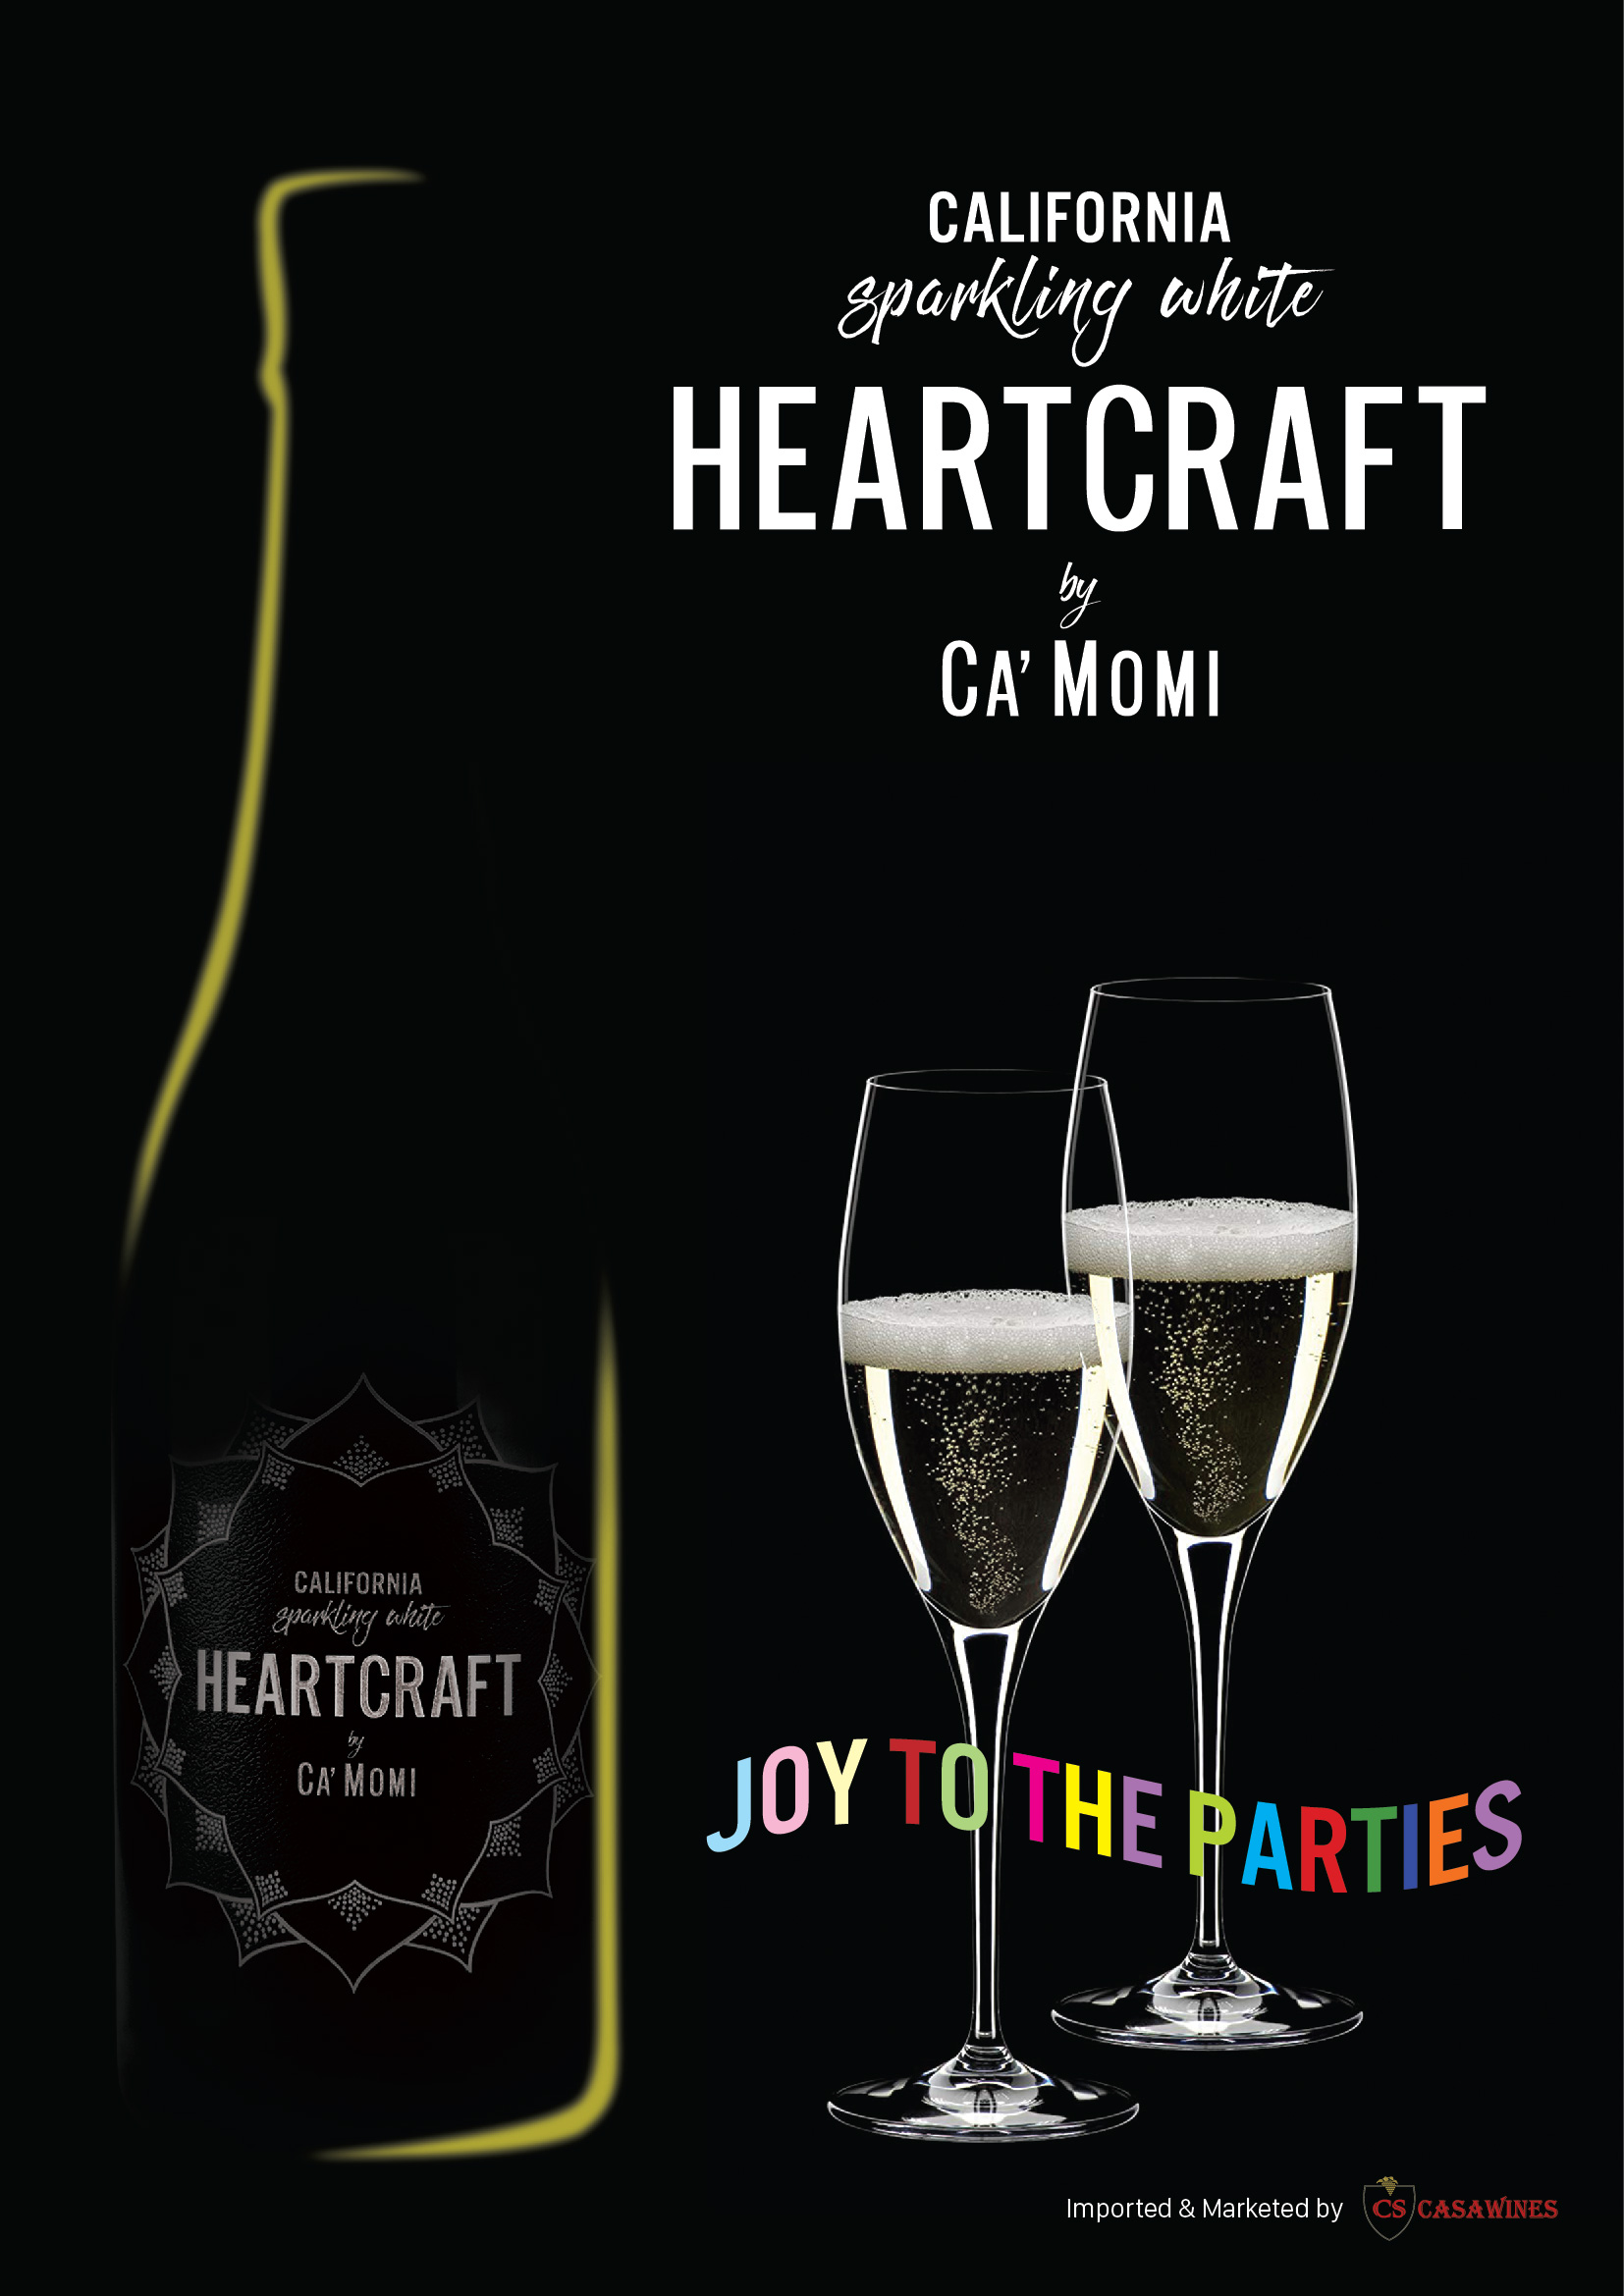 Heartcraft by Ca'Momi California Sparkling White